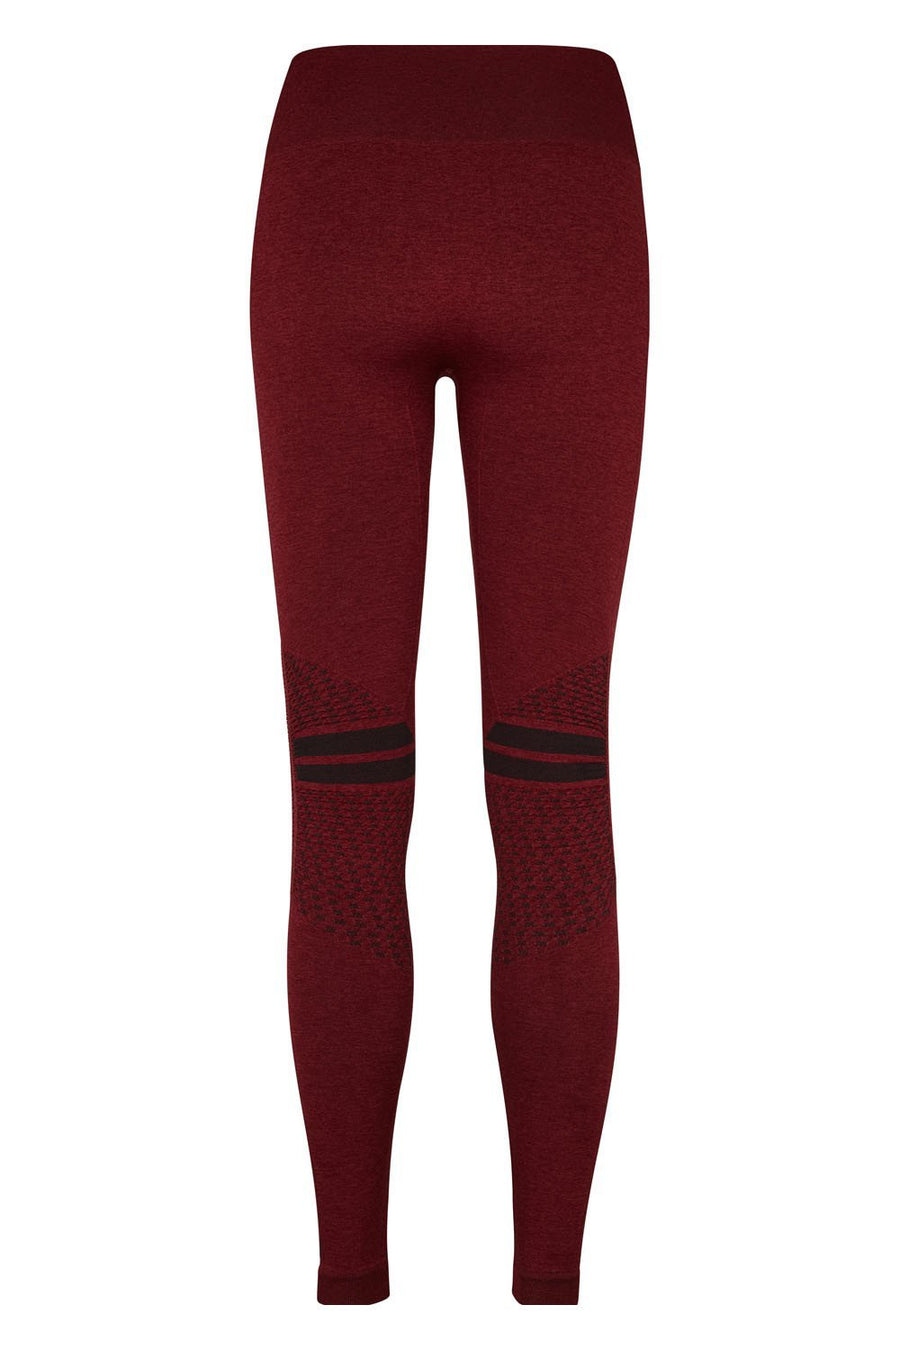 Beluga Classic Tights Long - Vino